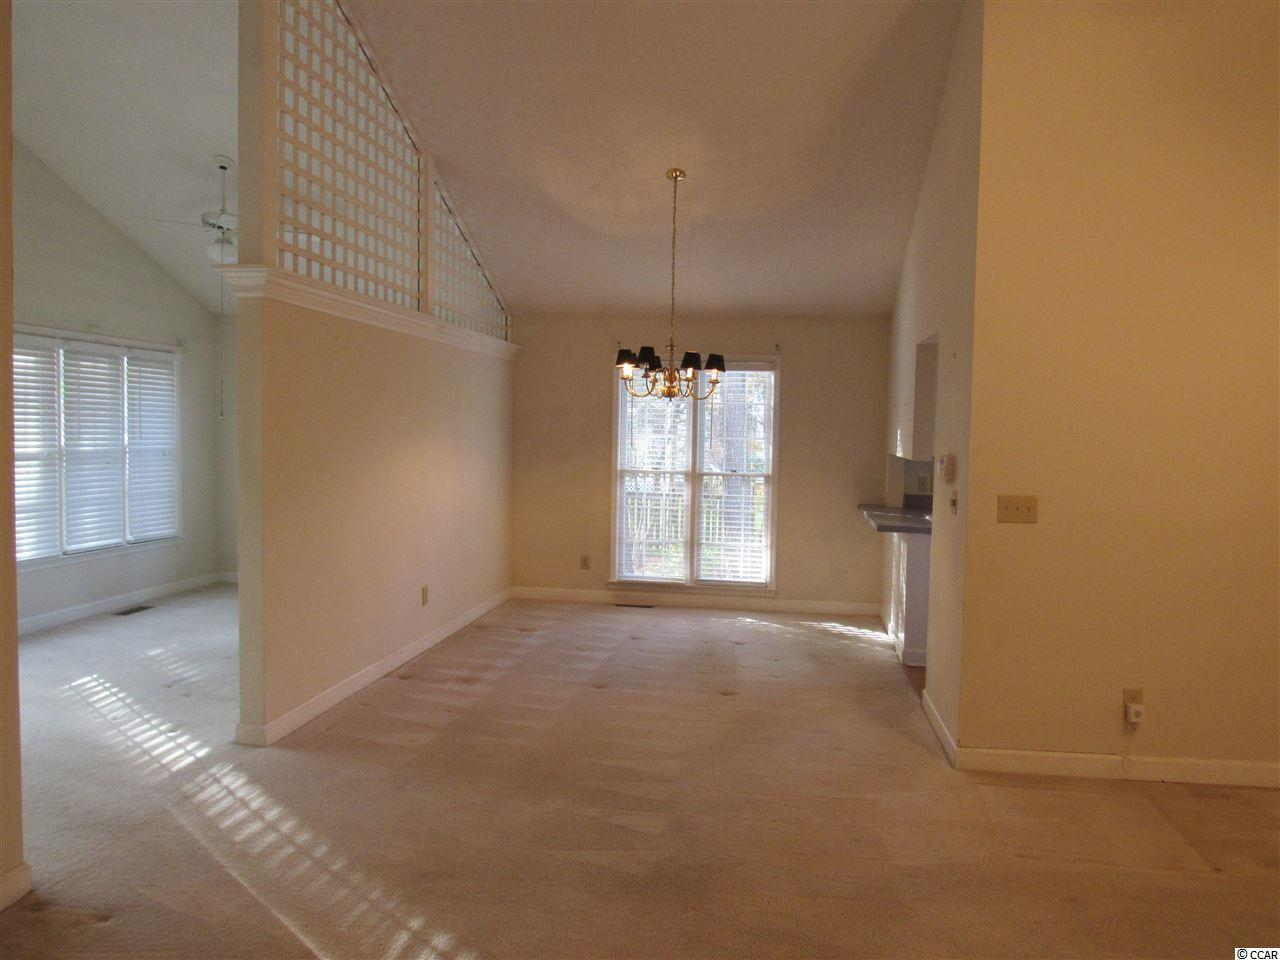 MLS #1724714 at  Ricefields Plantation for sale